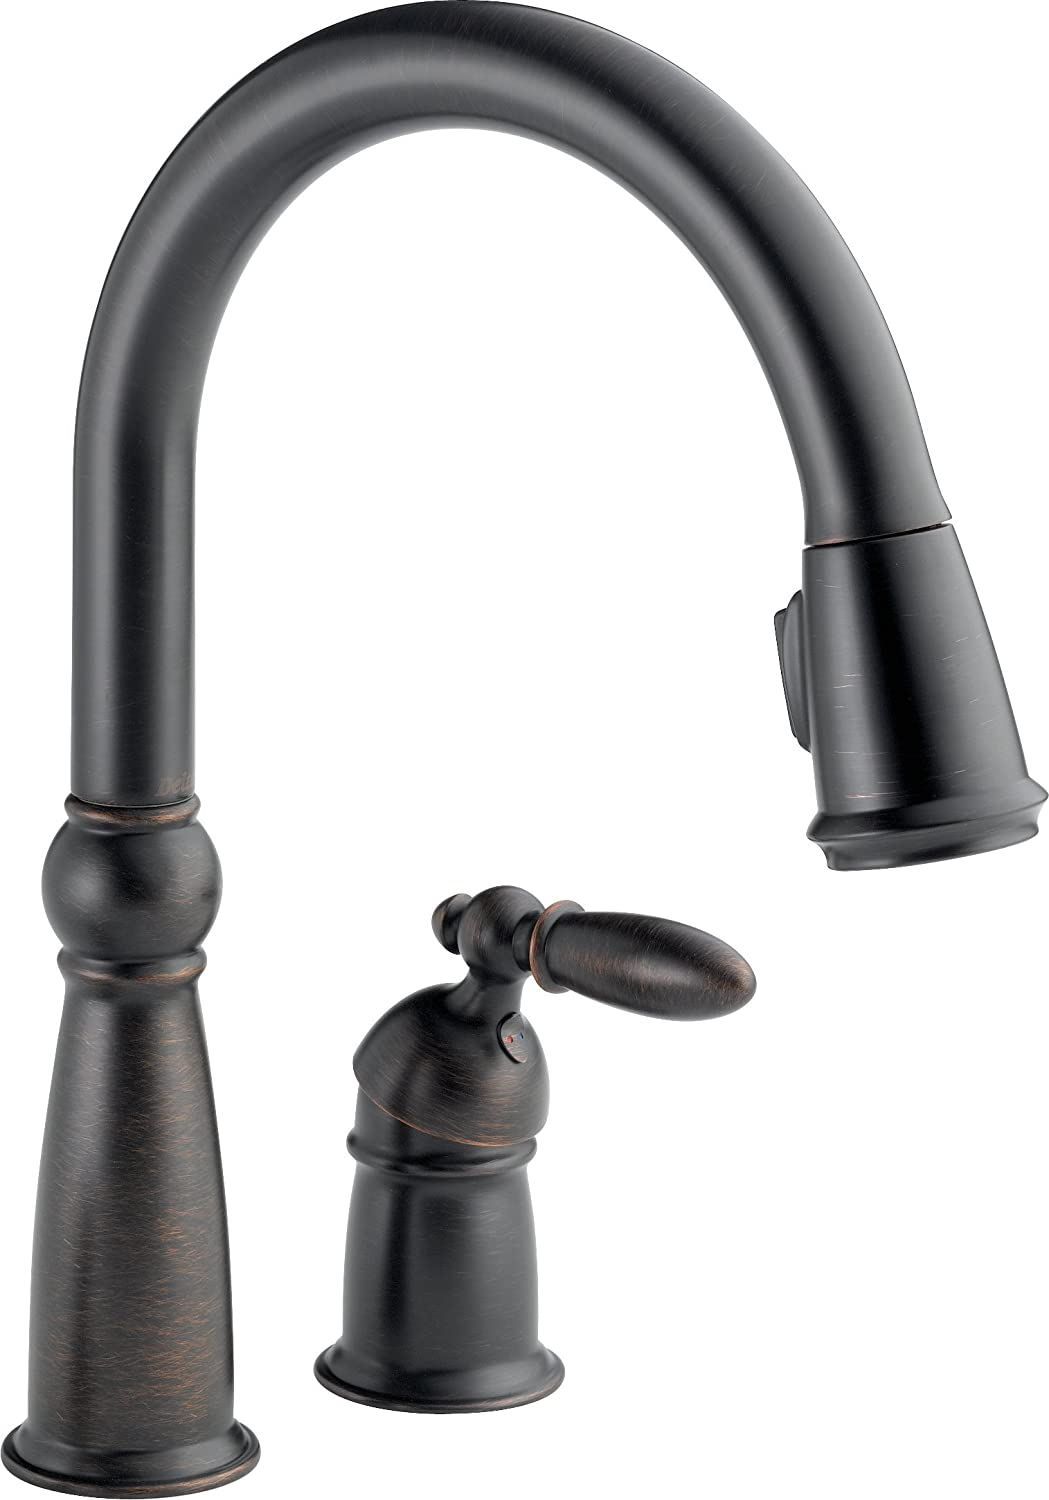 Delta Faucet Victorian Single-Handle Kitchen Sink Faucet with Pull Down Sprayer and Magnetic Docking Spray Head, Venetian Bronze 955-RB-DST